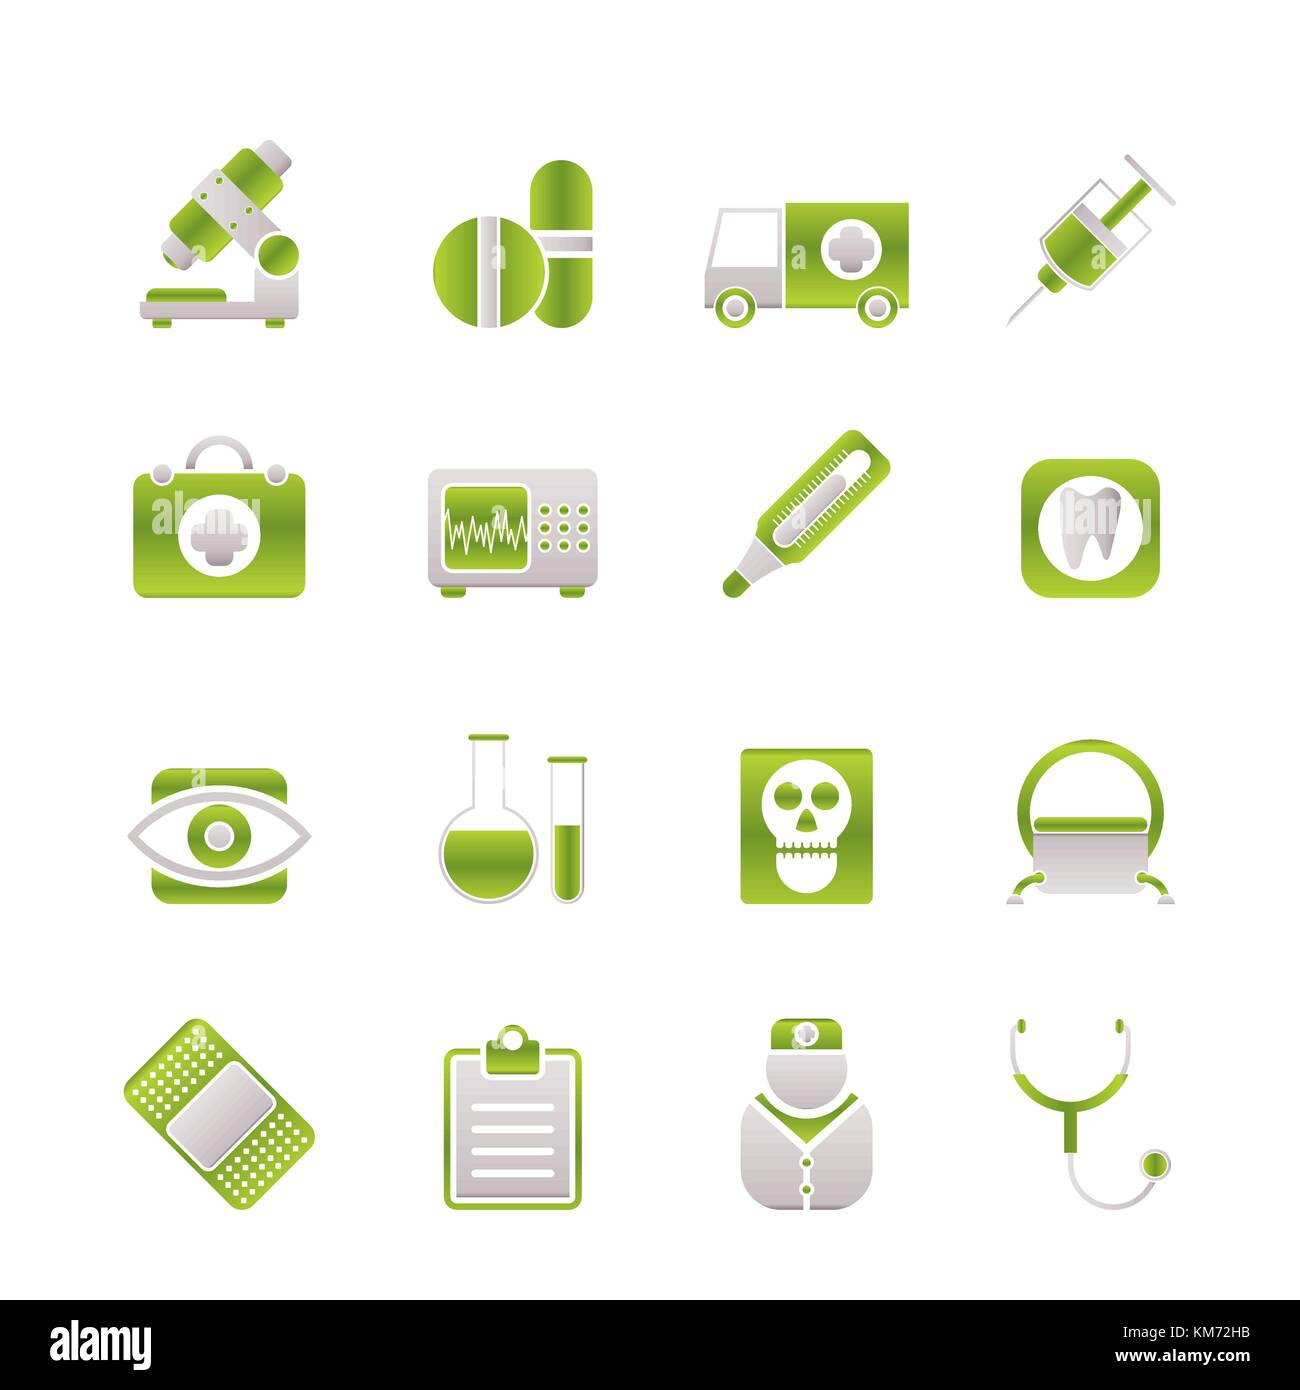 medical, hospital and health care icons - vector icon set Stock Vector